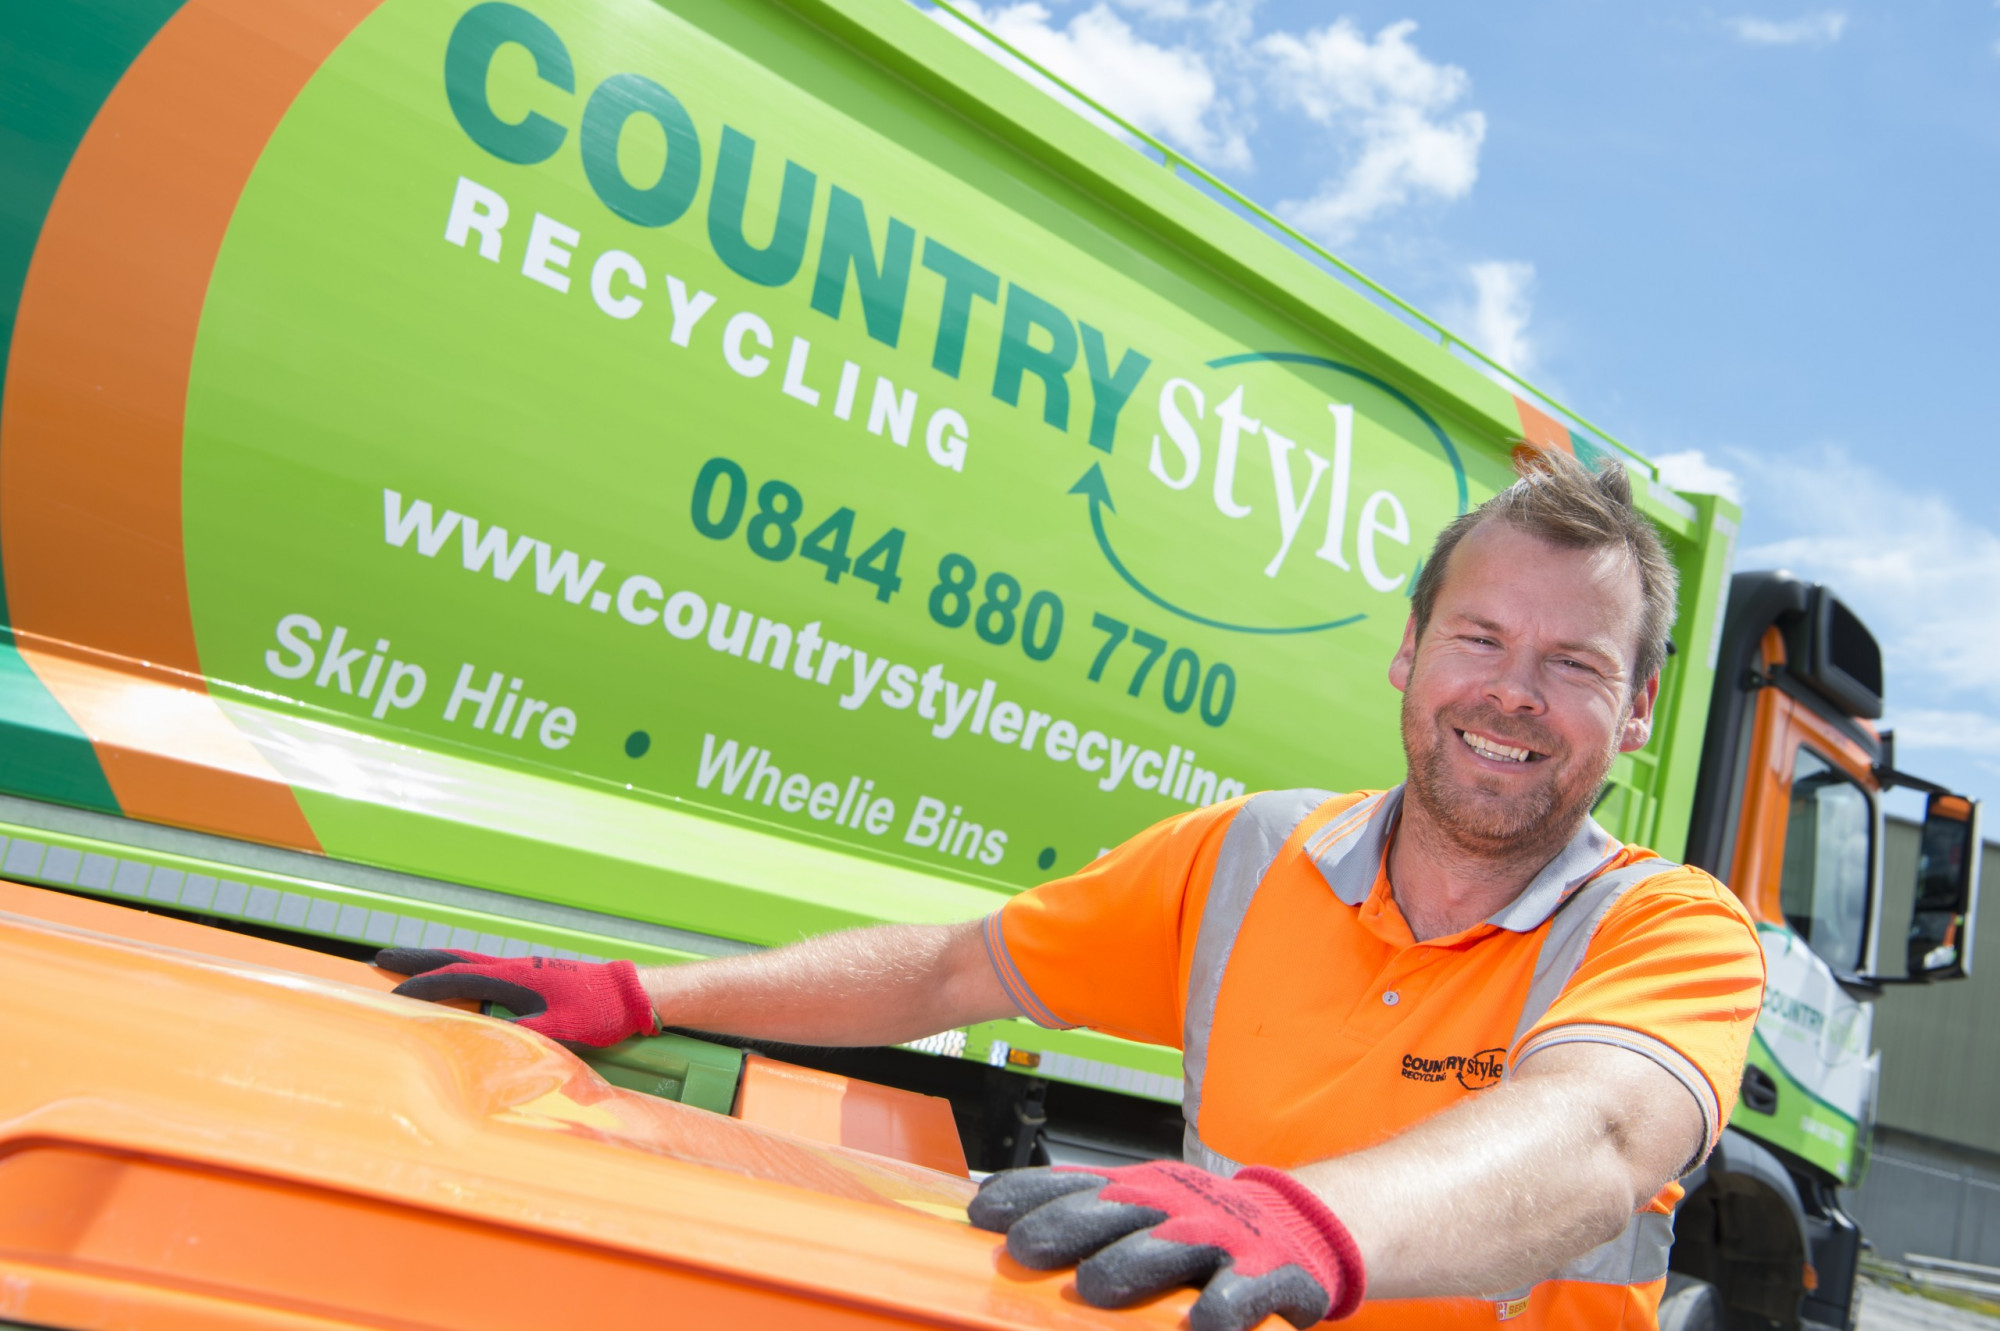 Countrystyle Recycling Waste Management